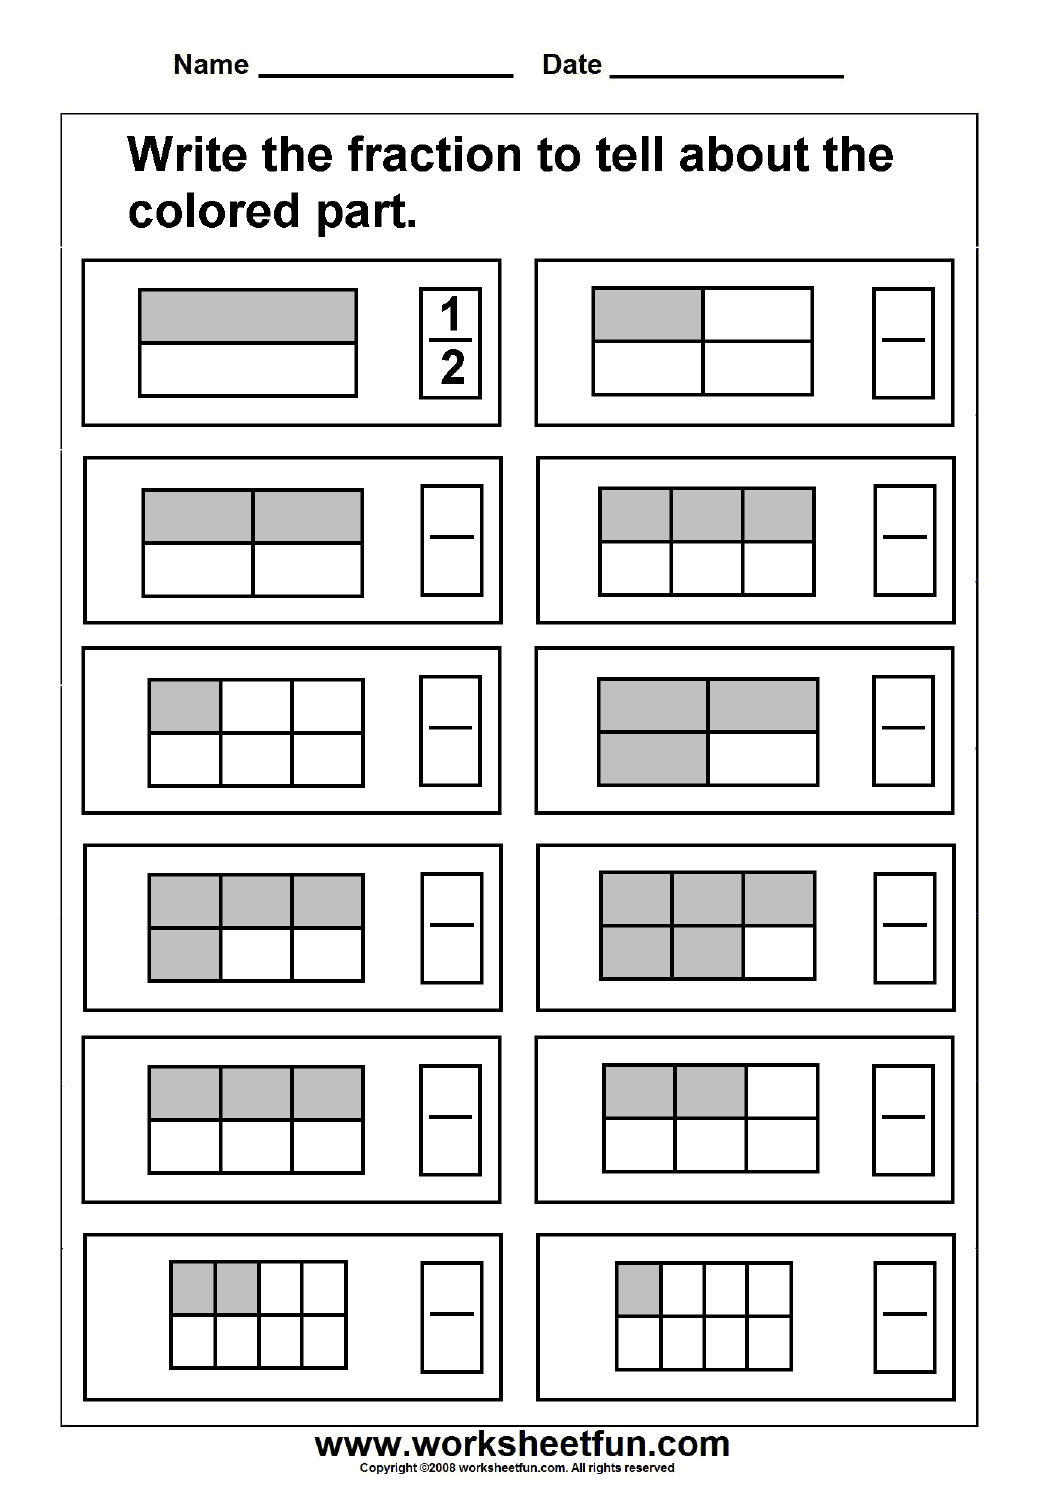 Printables Math Models Worksheets fraction model free printable worksheets worksheetfun 3 worksheets